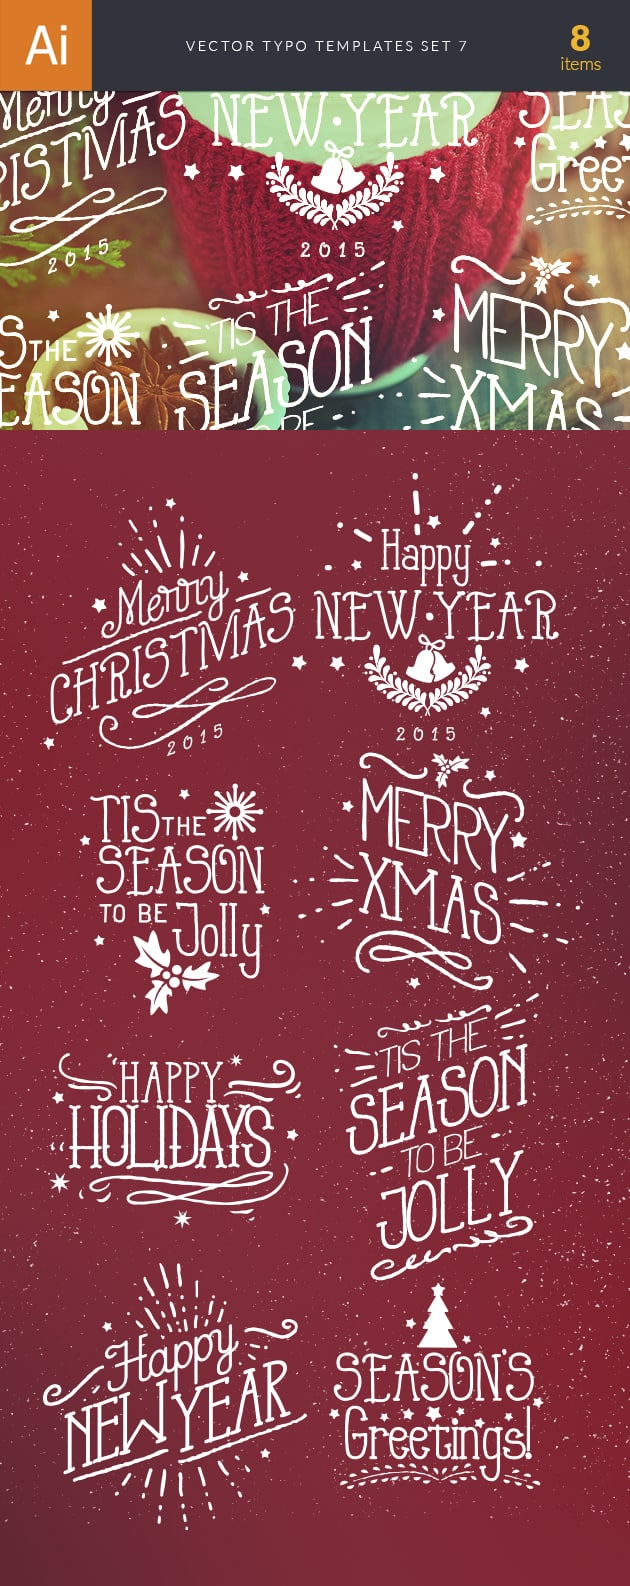 Vector Typography Templates Set 7 vector typography templates 7 preview large